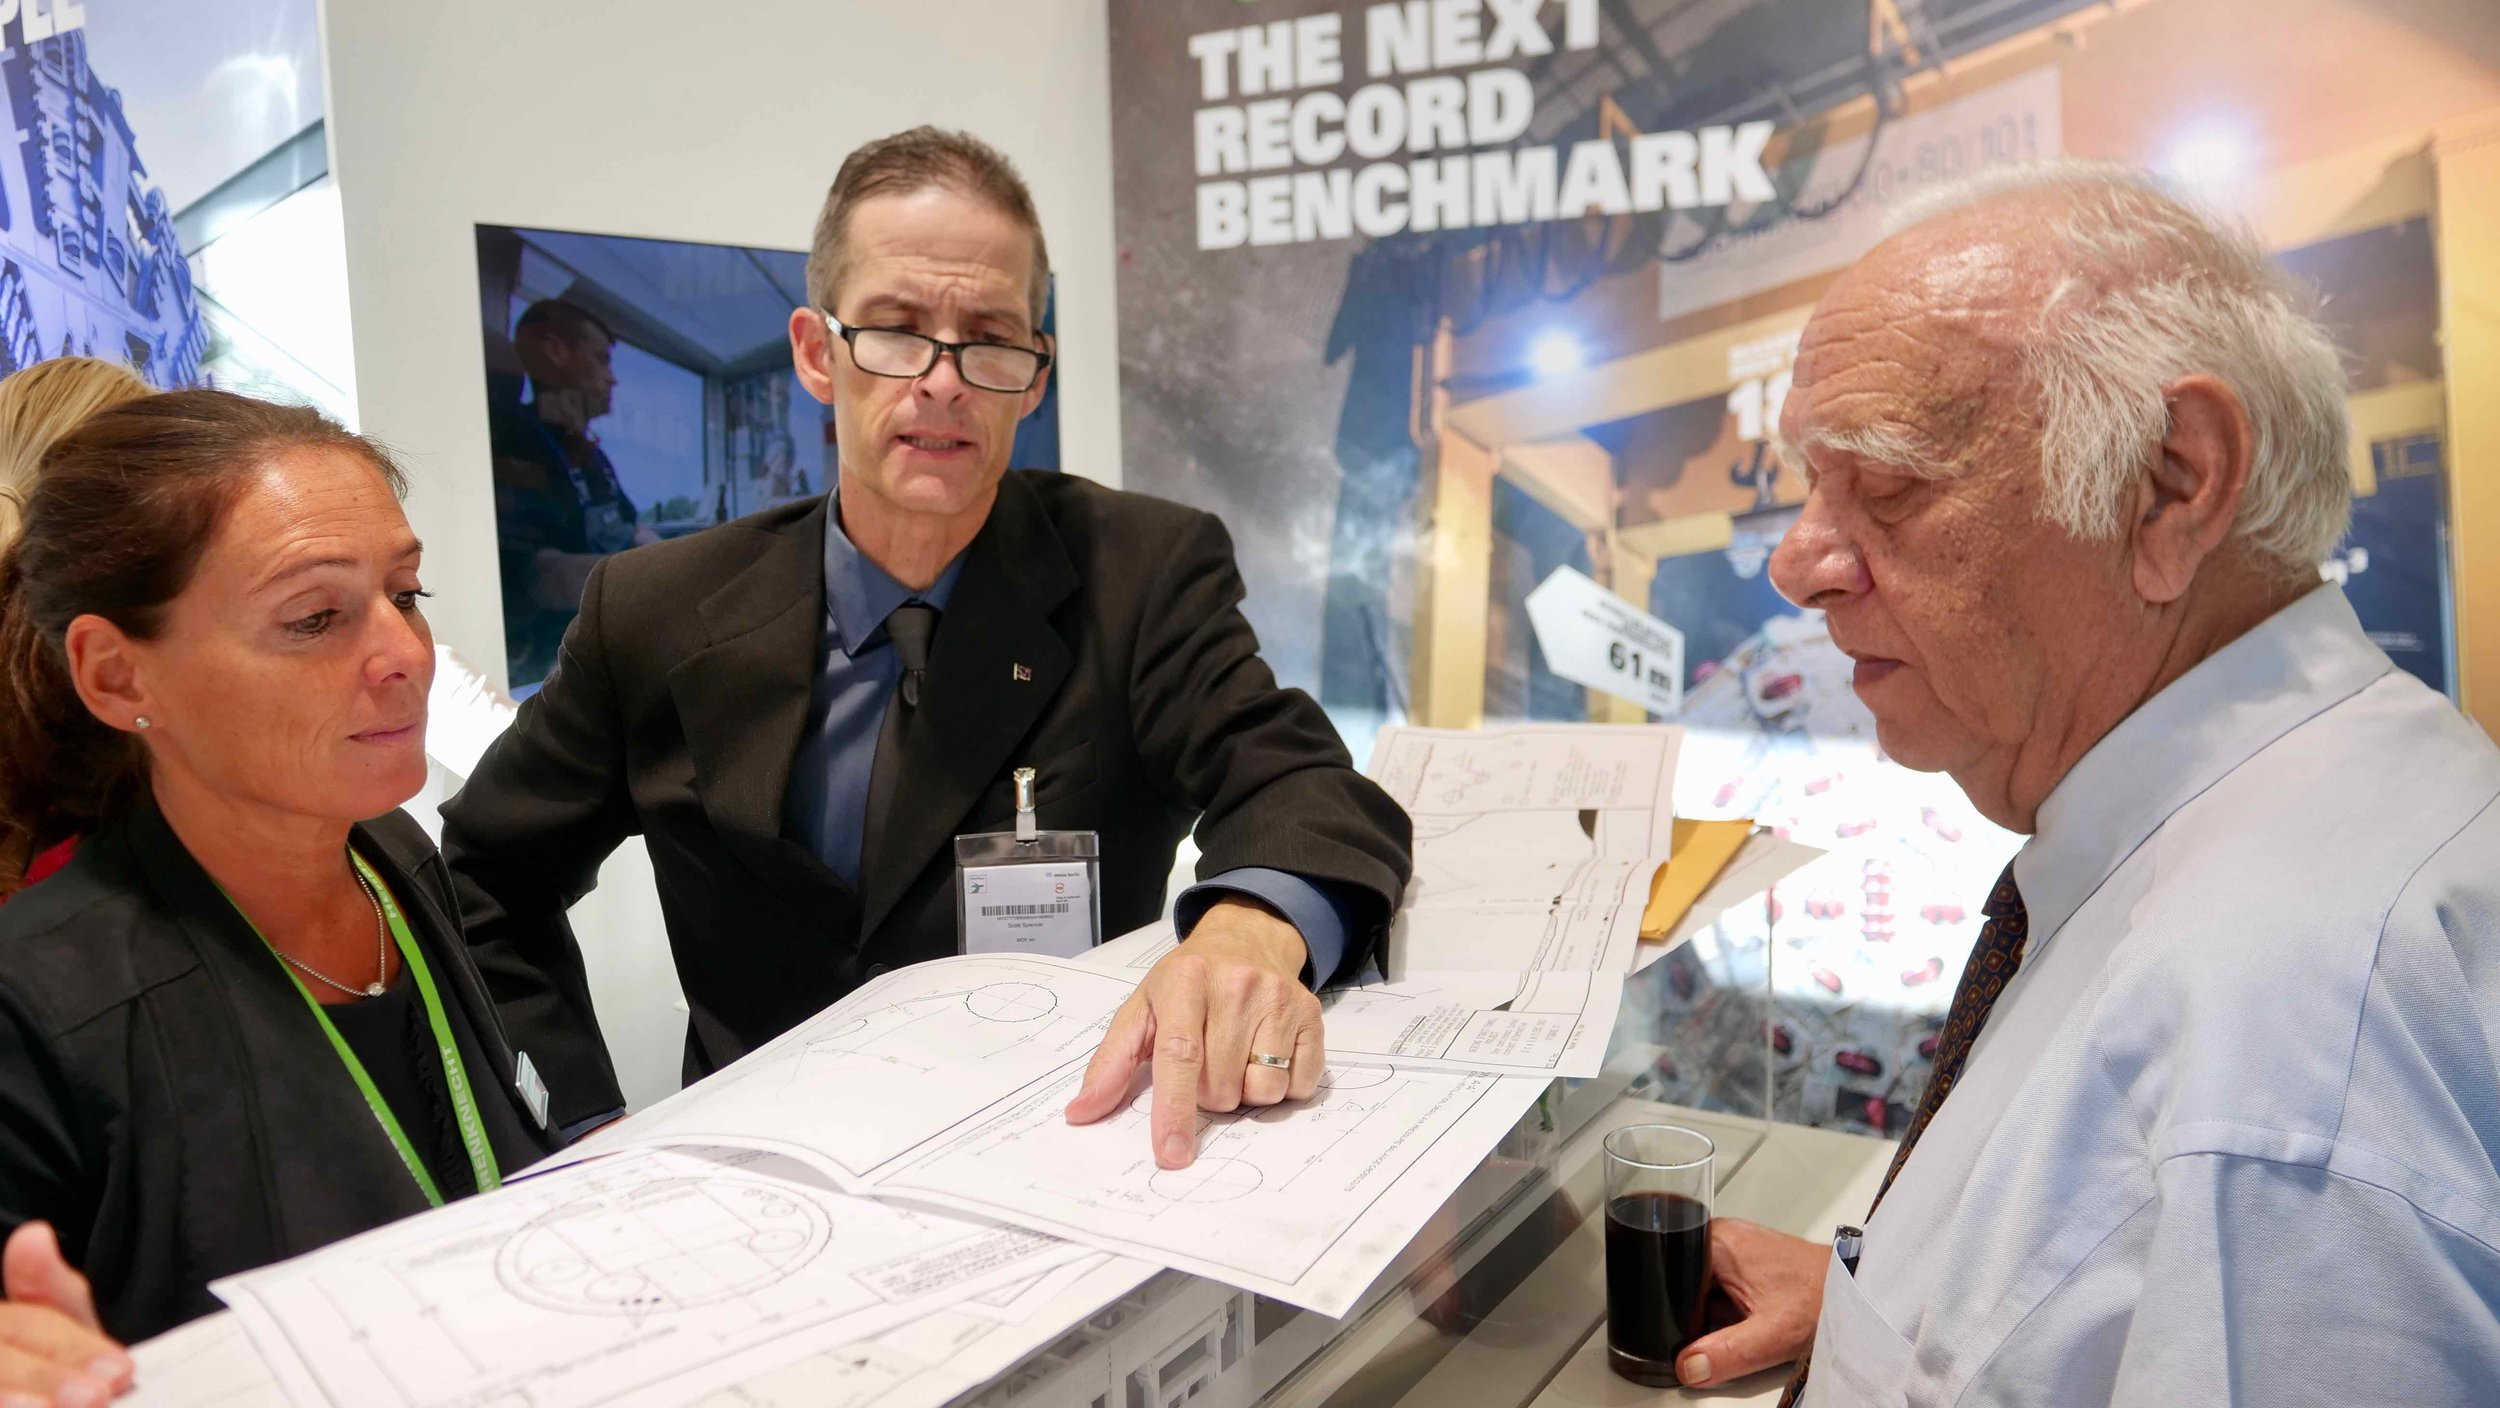 InterContinental Railway Chief Project Advisor Scott Spencer (middle) and ICR founder George Koumal (r) show Mr. Koumal's design of the Bering Strait tunnel to Dr. Karin Bäppler, Head of Business Development and Geotechnics & Consulting & Traffic Tunnelling at Herrenknecht AG – one of the world's leading manufacturers of tunnel boring machines. Dr. Bäppler provided a wealth of technical insight on how to construct the Bering Strait tunnel.